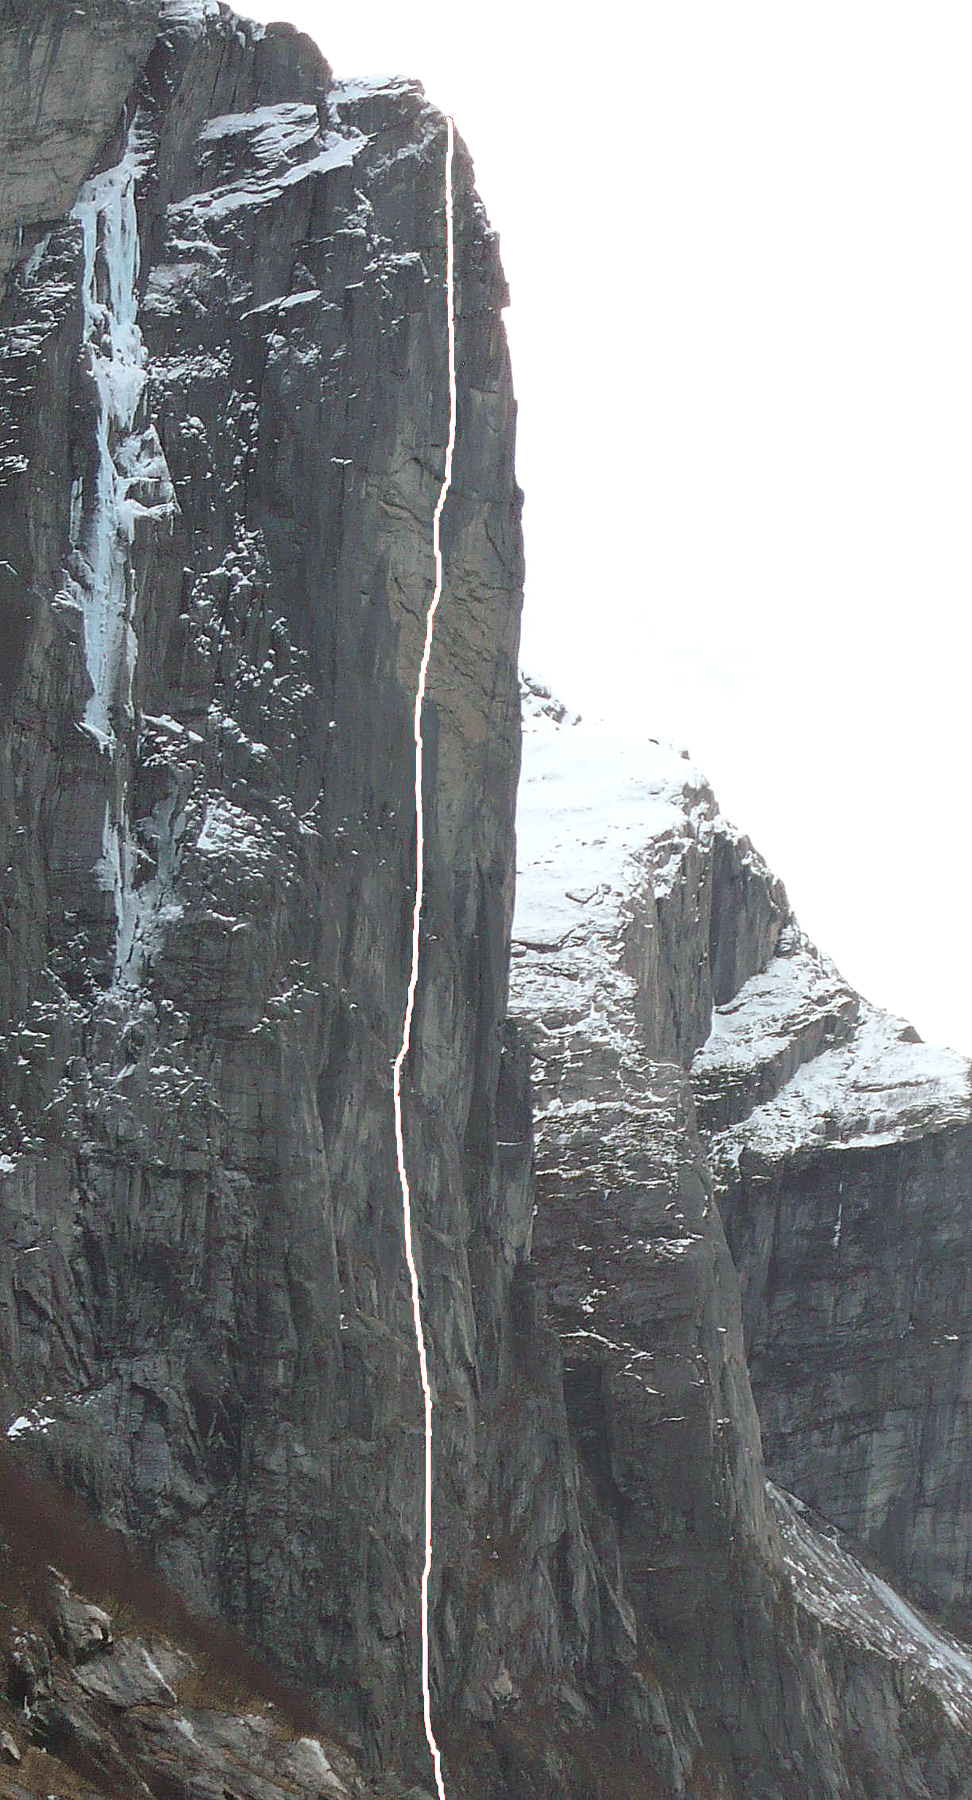 Russian winter route on central wall of Kjerag.